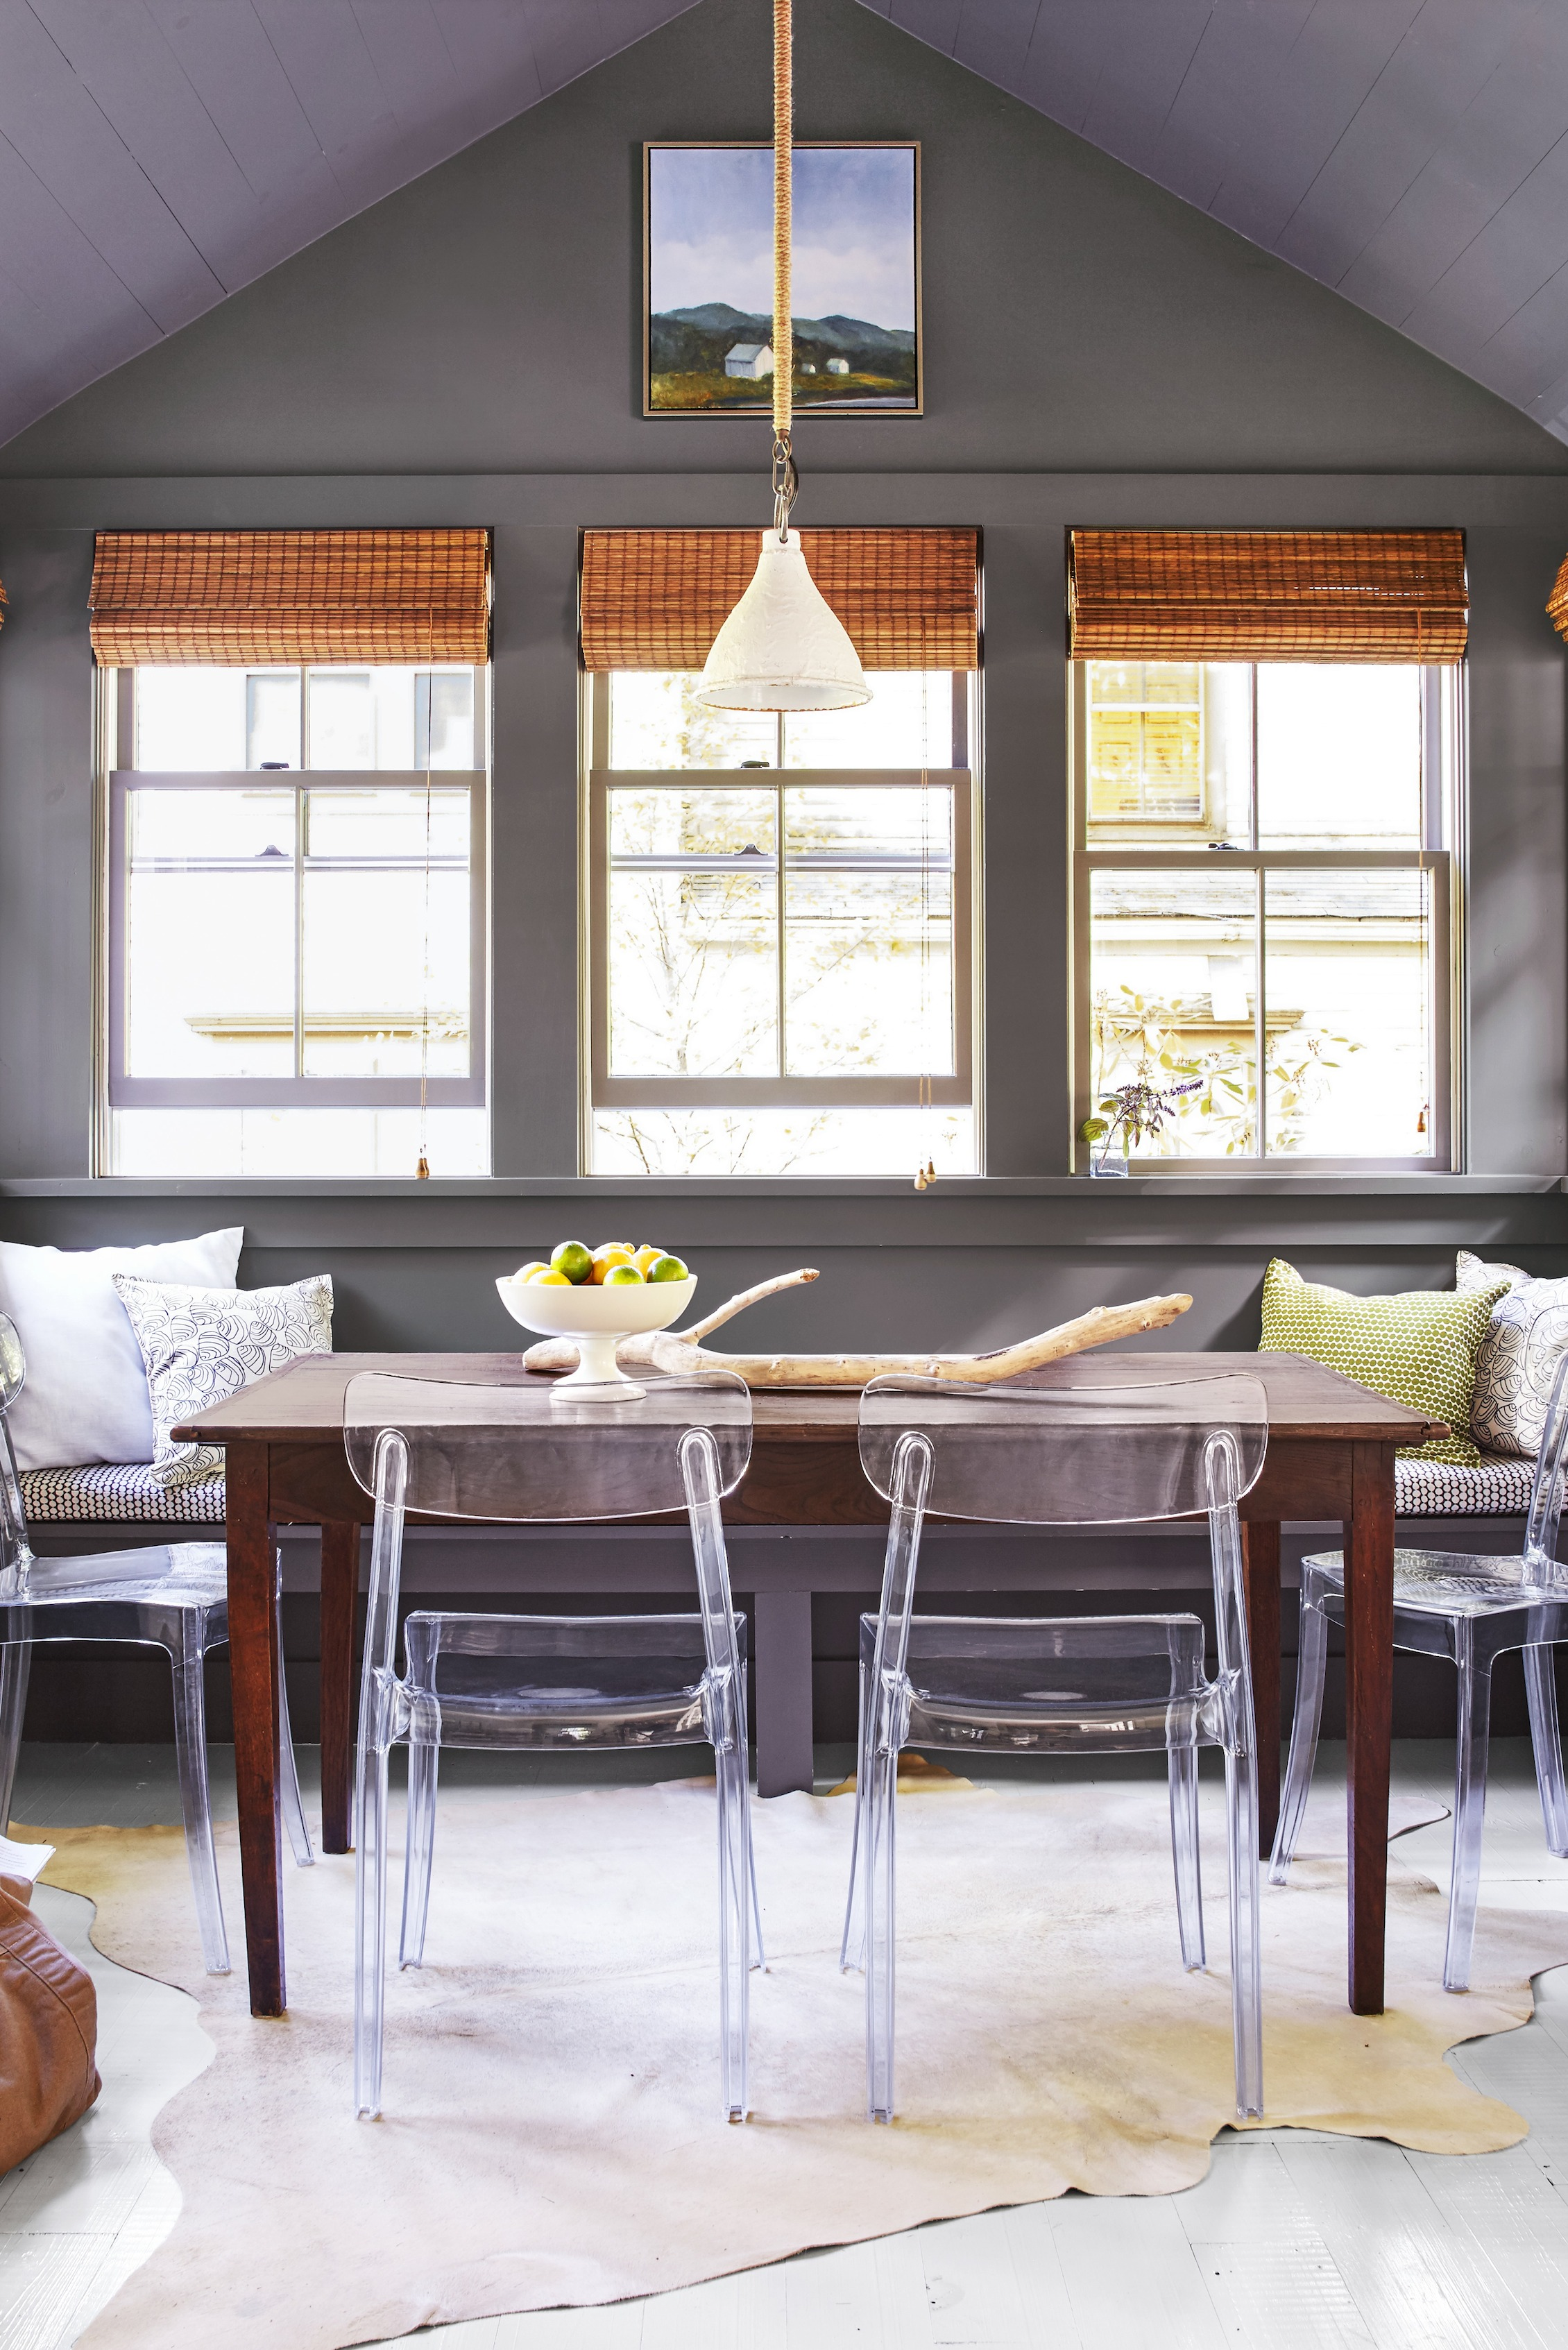 dining room decorating pictures | Dining Room Decorating Ideas - Pictures of Dining Room Decor